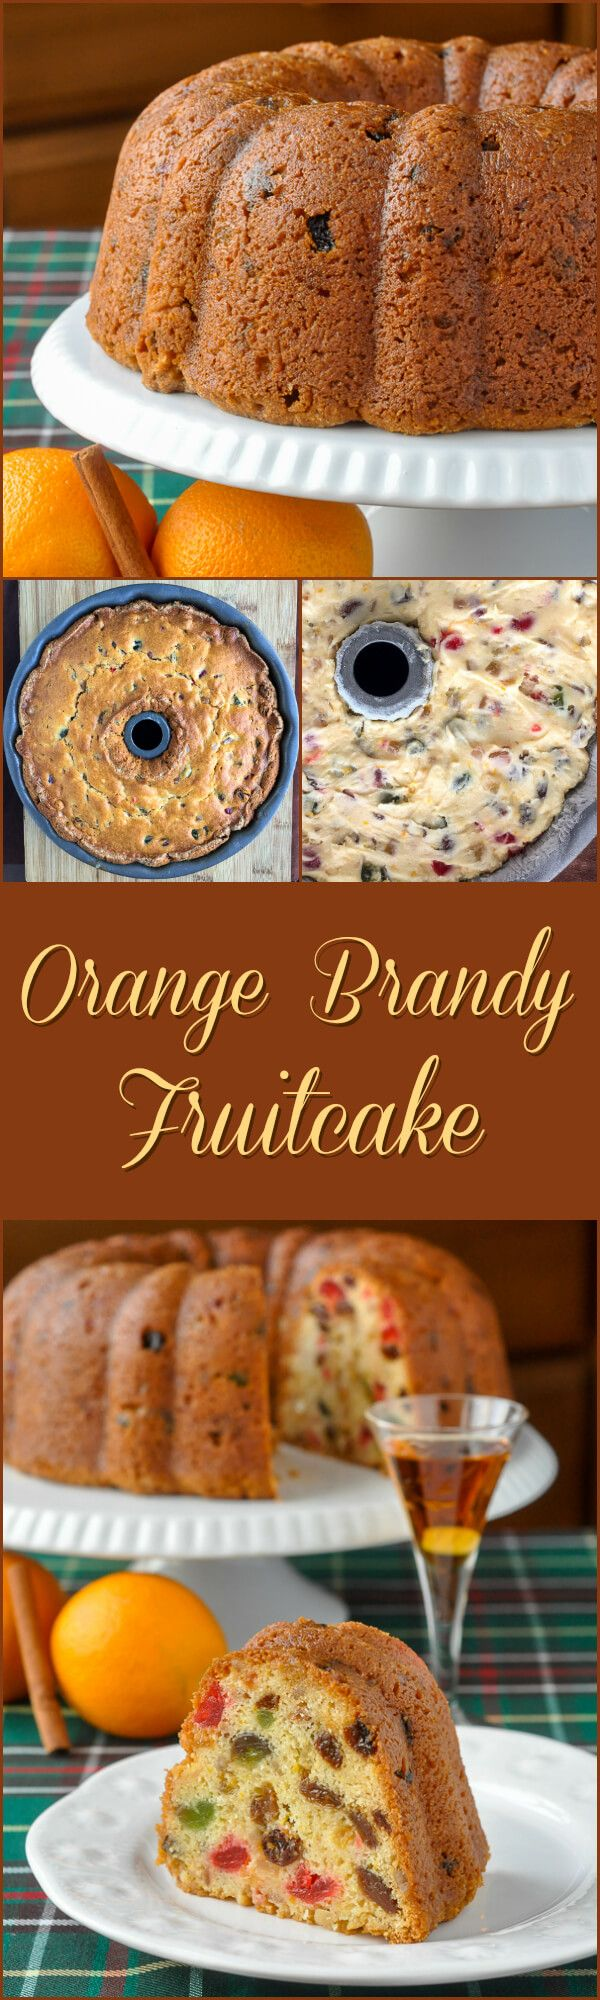 Orange Brandy Fruitcake - a rich cream cheese batter serves as the base for this simple but delicious citrus infused fruitcake that will be the absolute star of your Christmas baking.